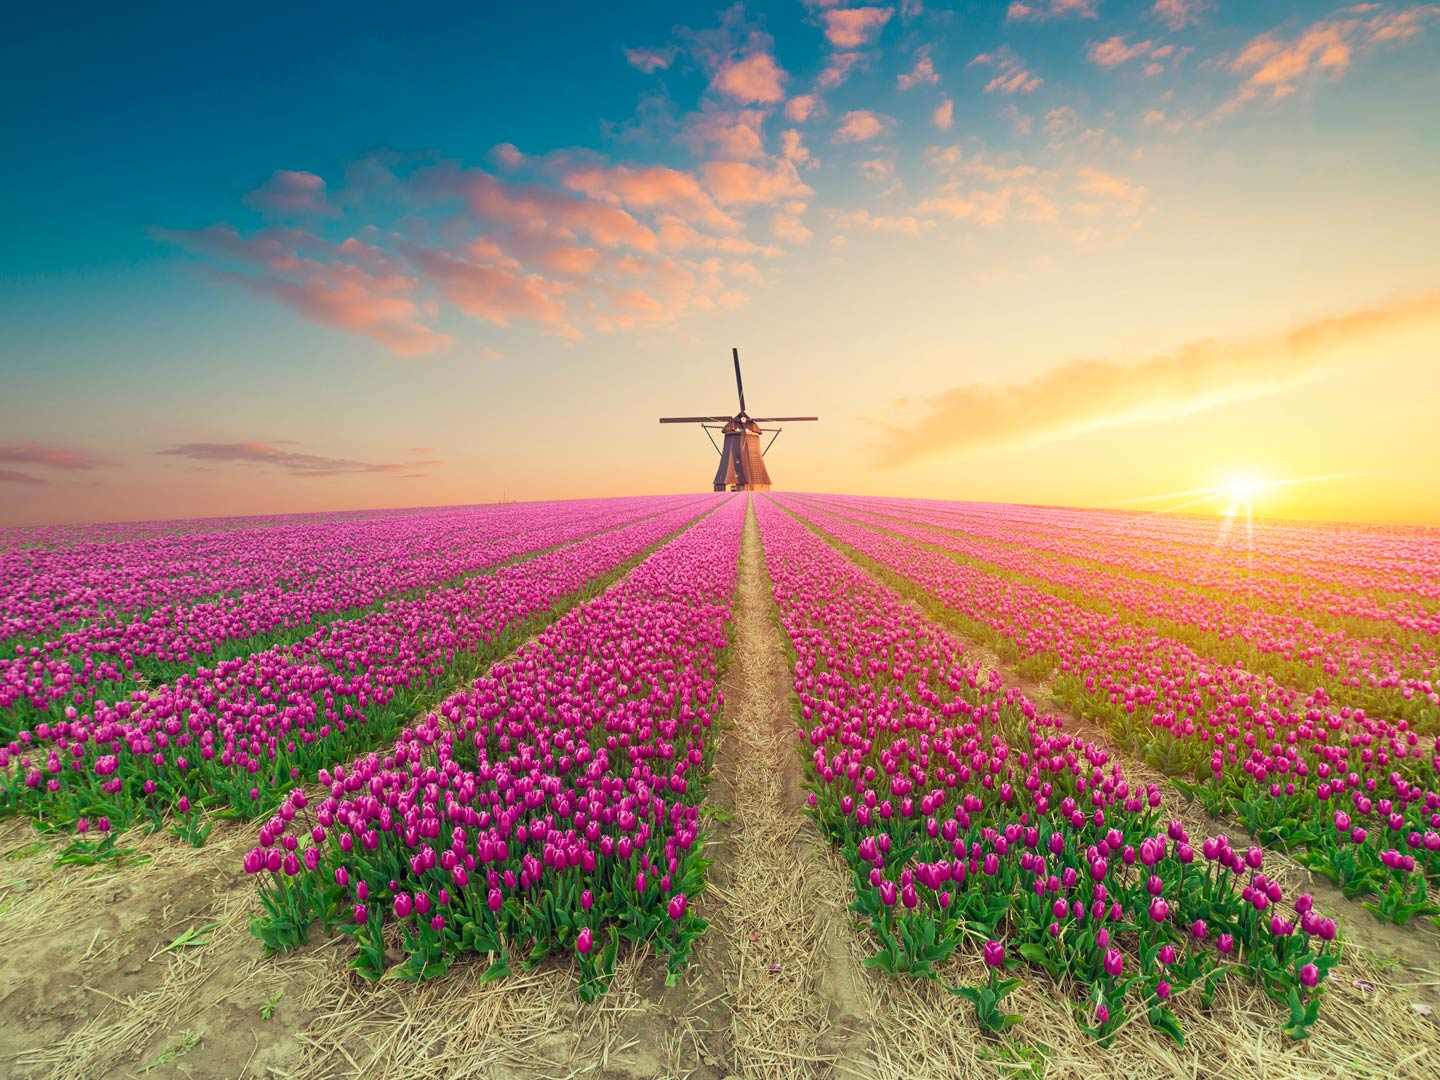 Landscape in the Netherlands, a view of a tulip field with a windmill